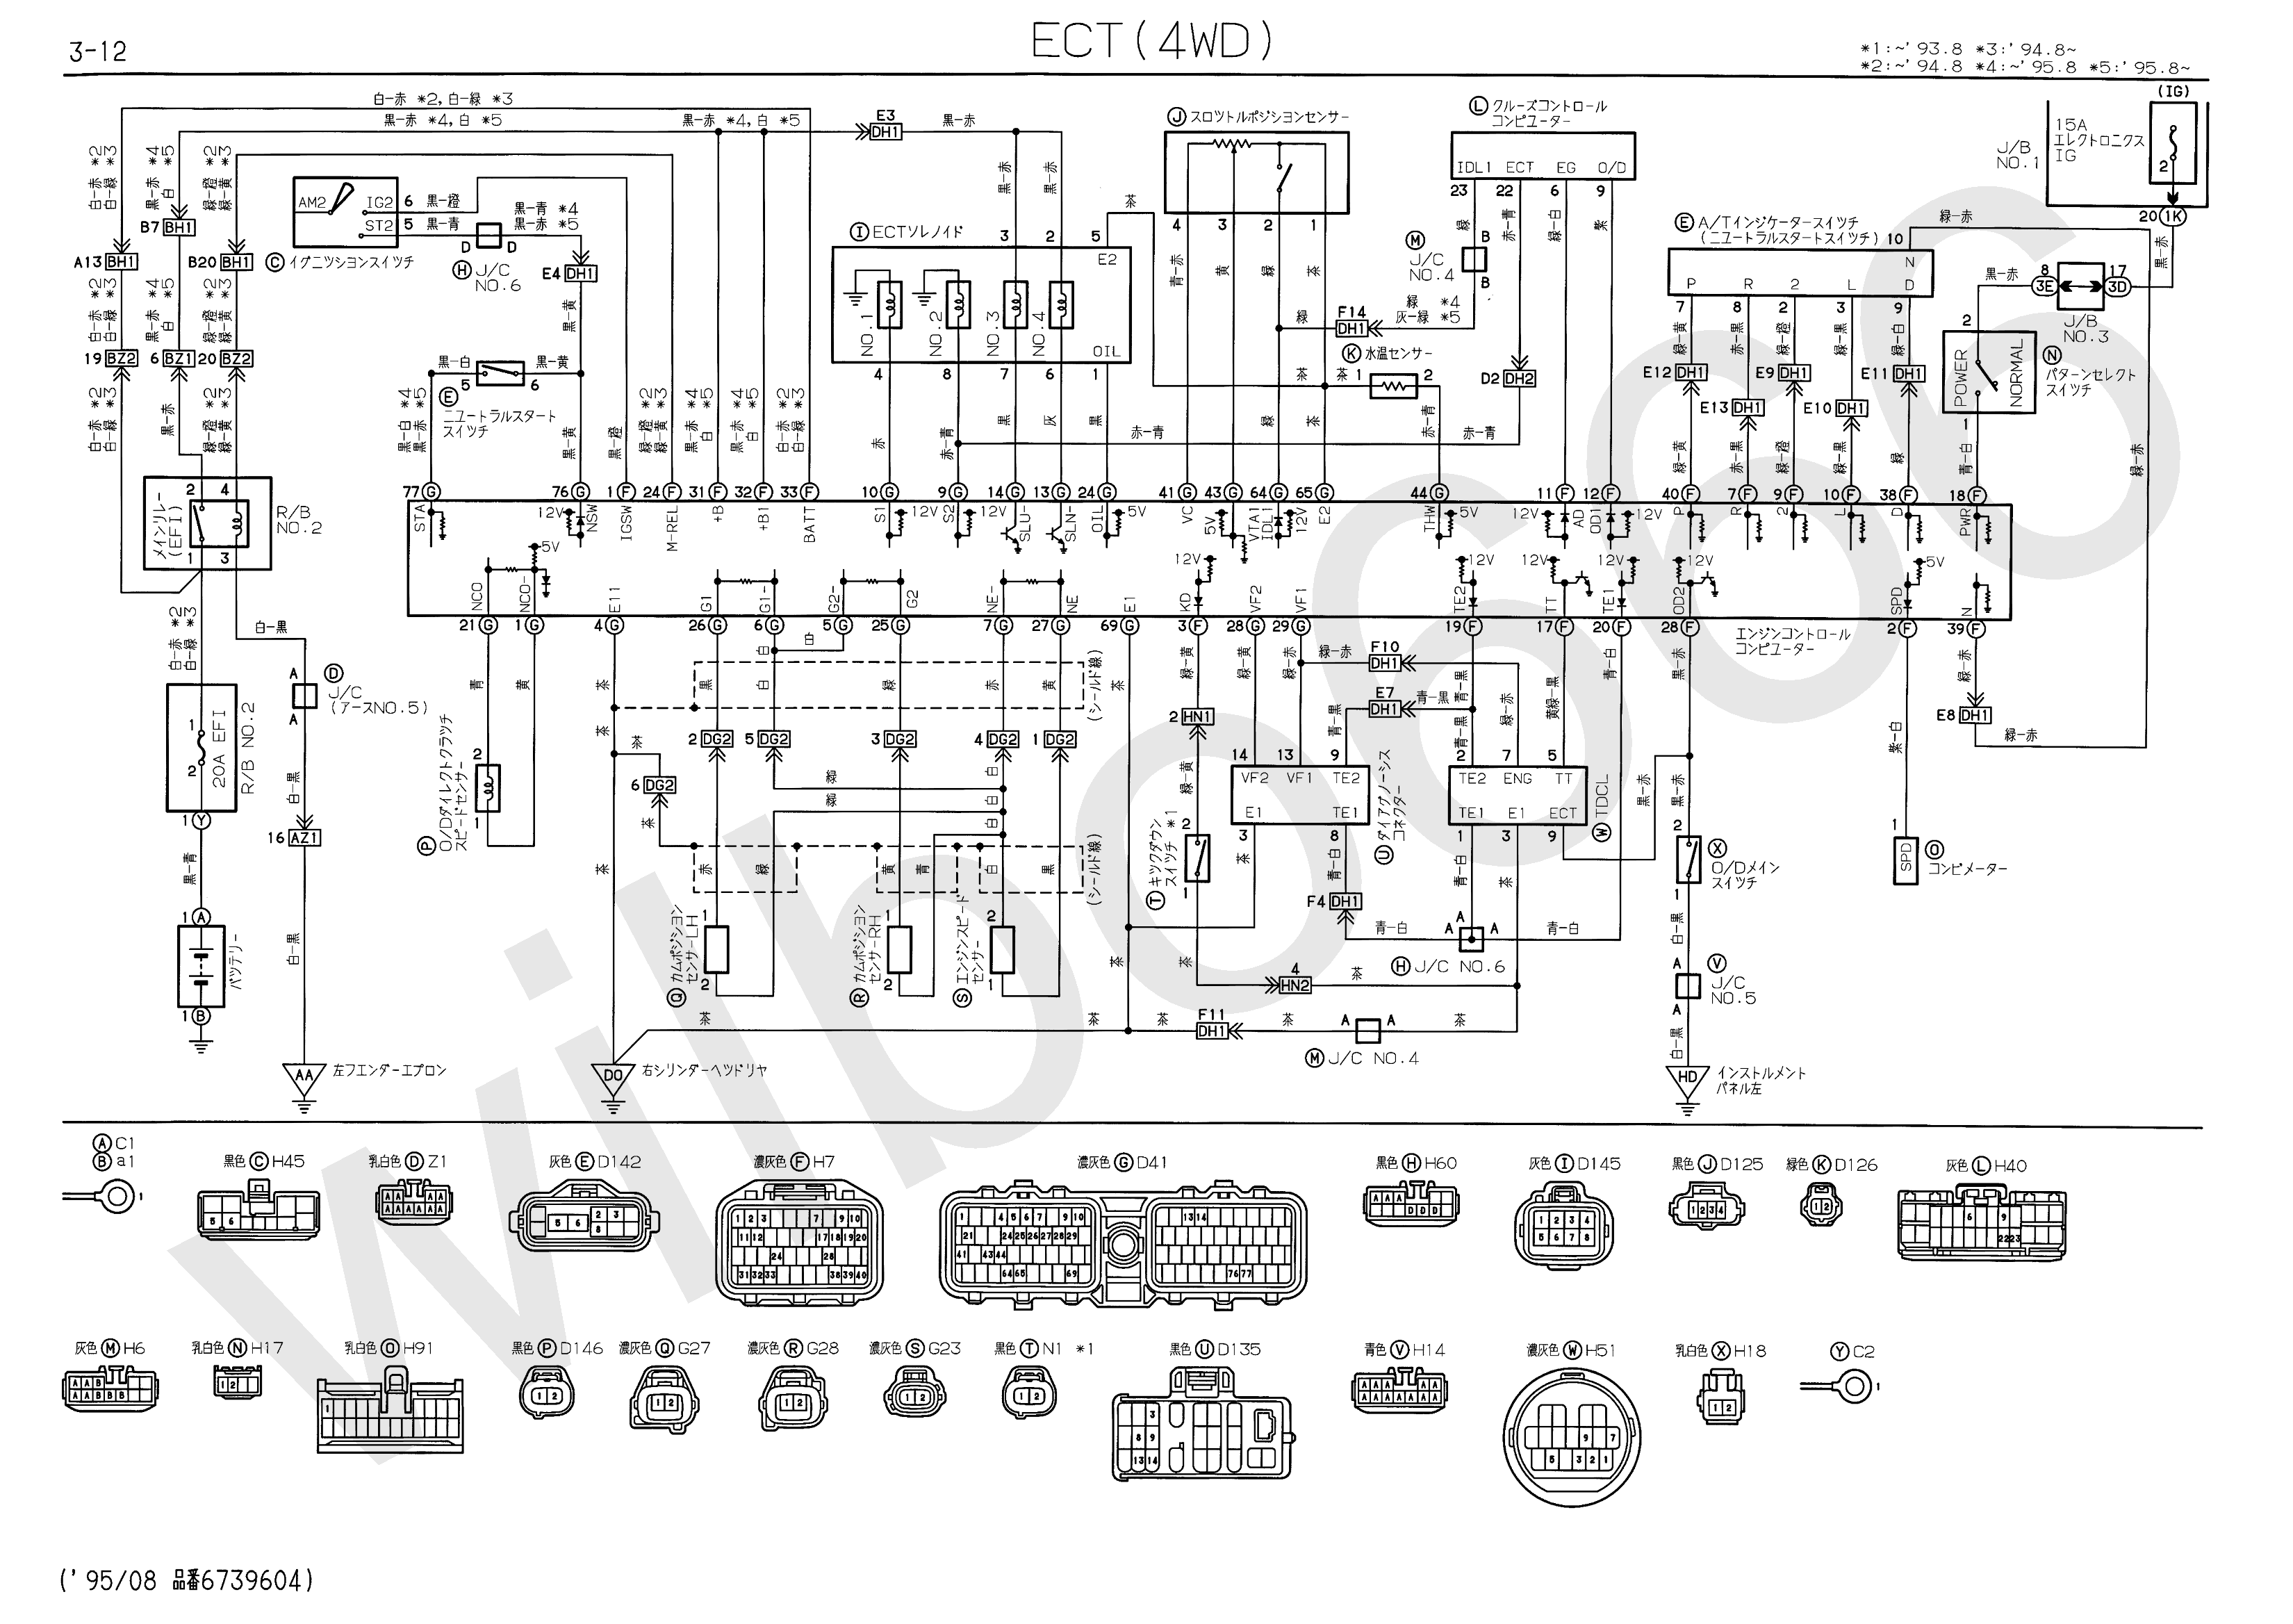 JZS14%23%2C UZS14%23 Electrical Wiring Diagram 6739604 3 12?resize\\\\\\\\\\\\\\\\\\\\\\\\\\\\\\\\\\\\\\\\\\\\\\\\\\\\\\\\\\\\\\\\\\\\\\\\\\\\\\\\\\\\\\\\\\\\\\\\\\\\\\\\\\\\\\\\\\\\\\\\\\\\\\\\\\\\\\\\\\\\\\\\\\\\\\\\\\\\\\\\\\\\\\\\\\\\\\\\\\\\\\\\\\\\\\\\\\\\\\\\\\\\\\\\\\\\\\\\\\\\\\\\\\\\\\\\\\\\\\\\\\\\\\\\\\\\\\\\\\\\\\\\\\\\\\\\\\\\\\\\\\\\\\\\\\\\\\\\\\\\\\\\\\\\\\\\\\\\\\\\\\\\\\\\\\\\\\\\\\\\\\\\\\\\\\\\\\\\\\\\\\\\\\\\\\\\\\\\\\\\\\\\\\\\\\\\\\\\\\\\\\\\\\\\\\\\\\\\\\\\\\\\\\\\\\\\\\\\\\\\\\\\\\\=665%2C471 cat 422s wiring diagram cat forklift parts manual pdf \u2022 wiring  at soozxer.org